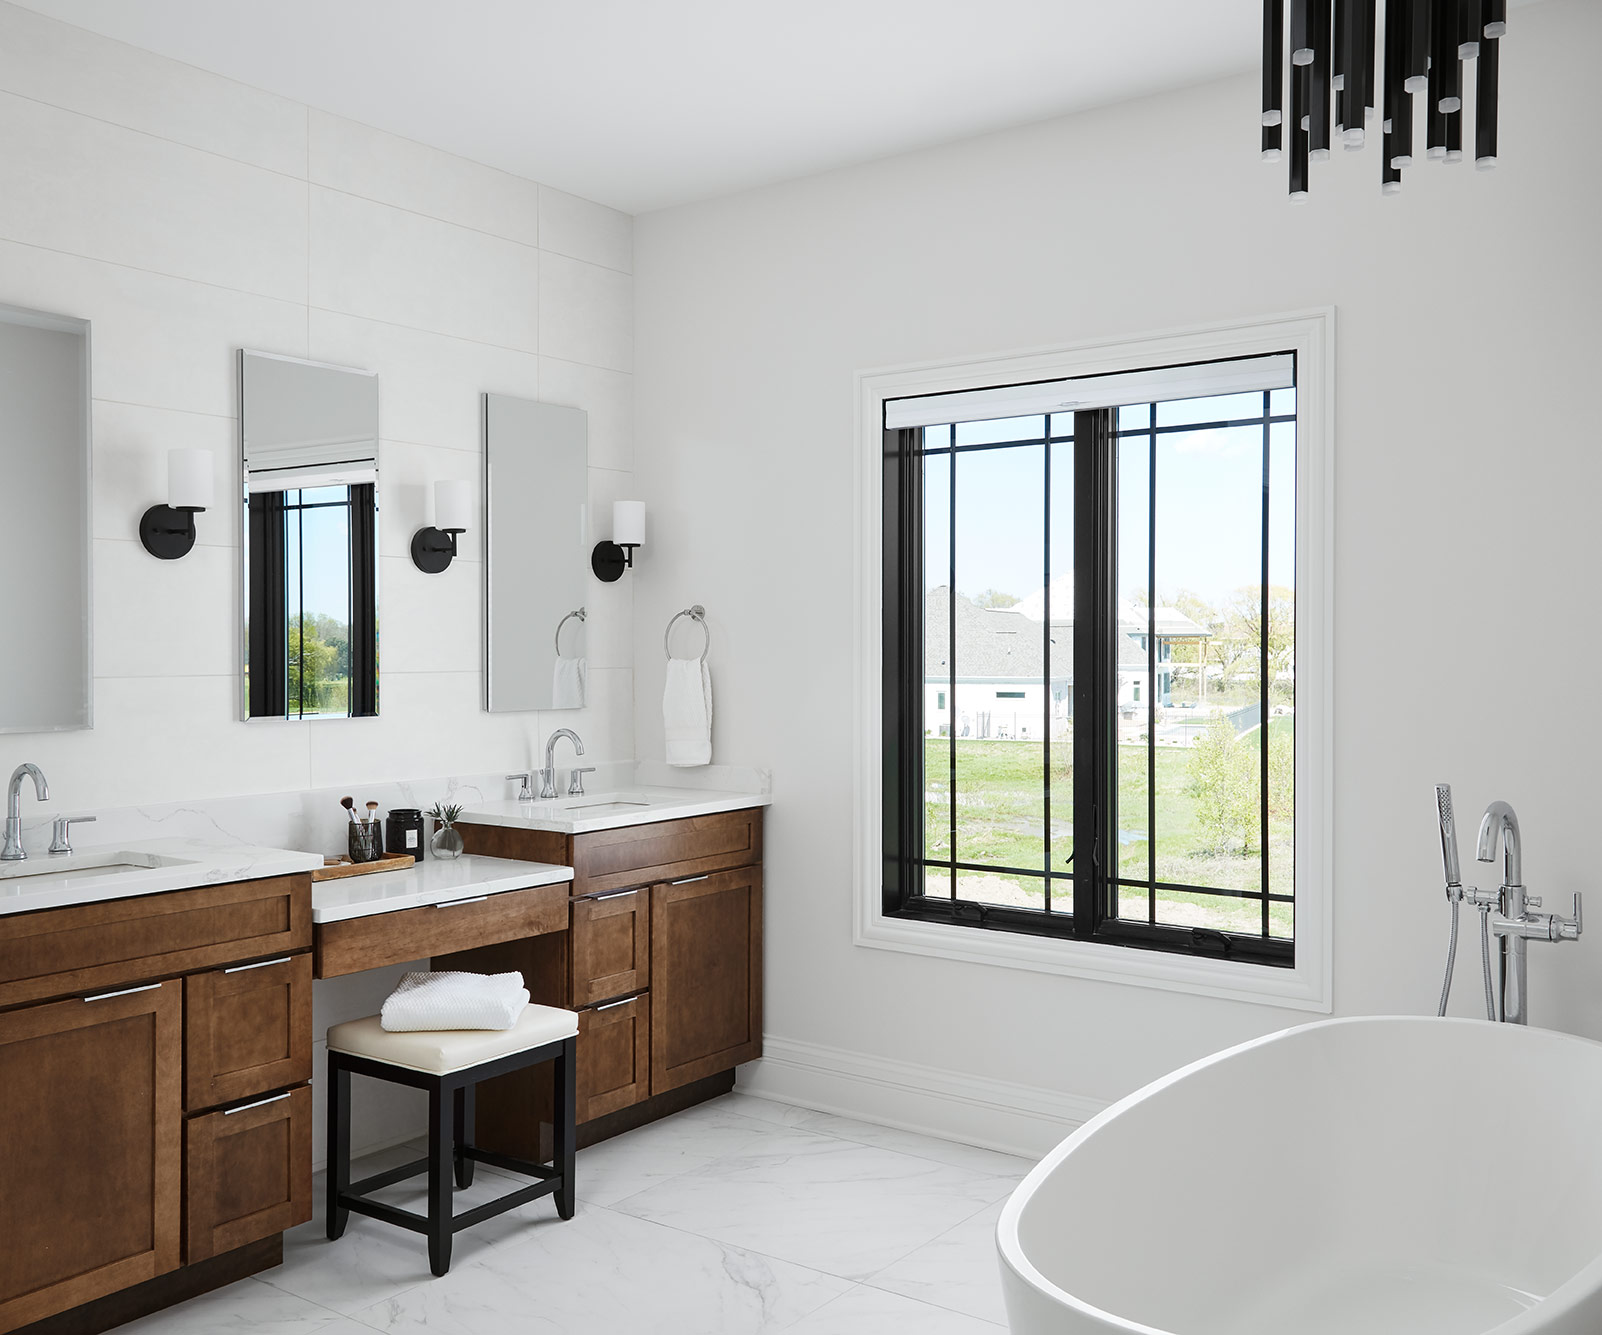 The master bath continues a serene palette with marble floors and a textured white tile behind a rich, walnut vanity. A freestanding tub provides a luxurious escape and the dripping chandelier above it pulls in some drama and elegance.